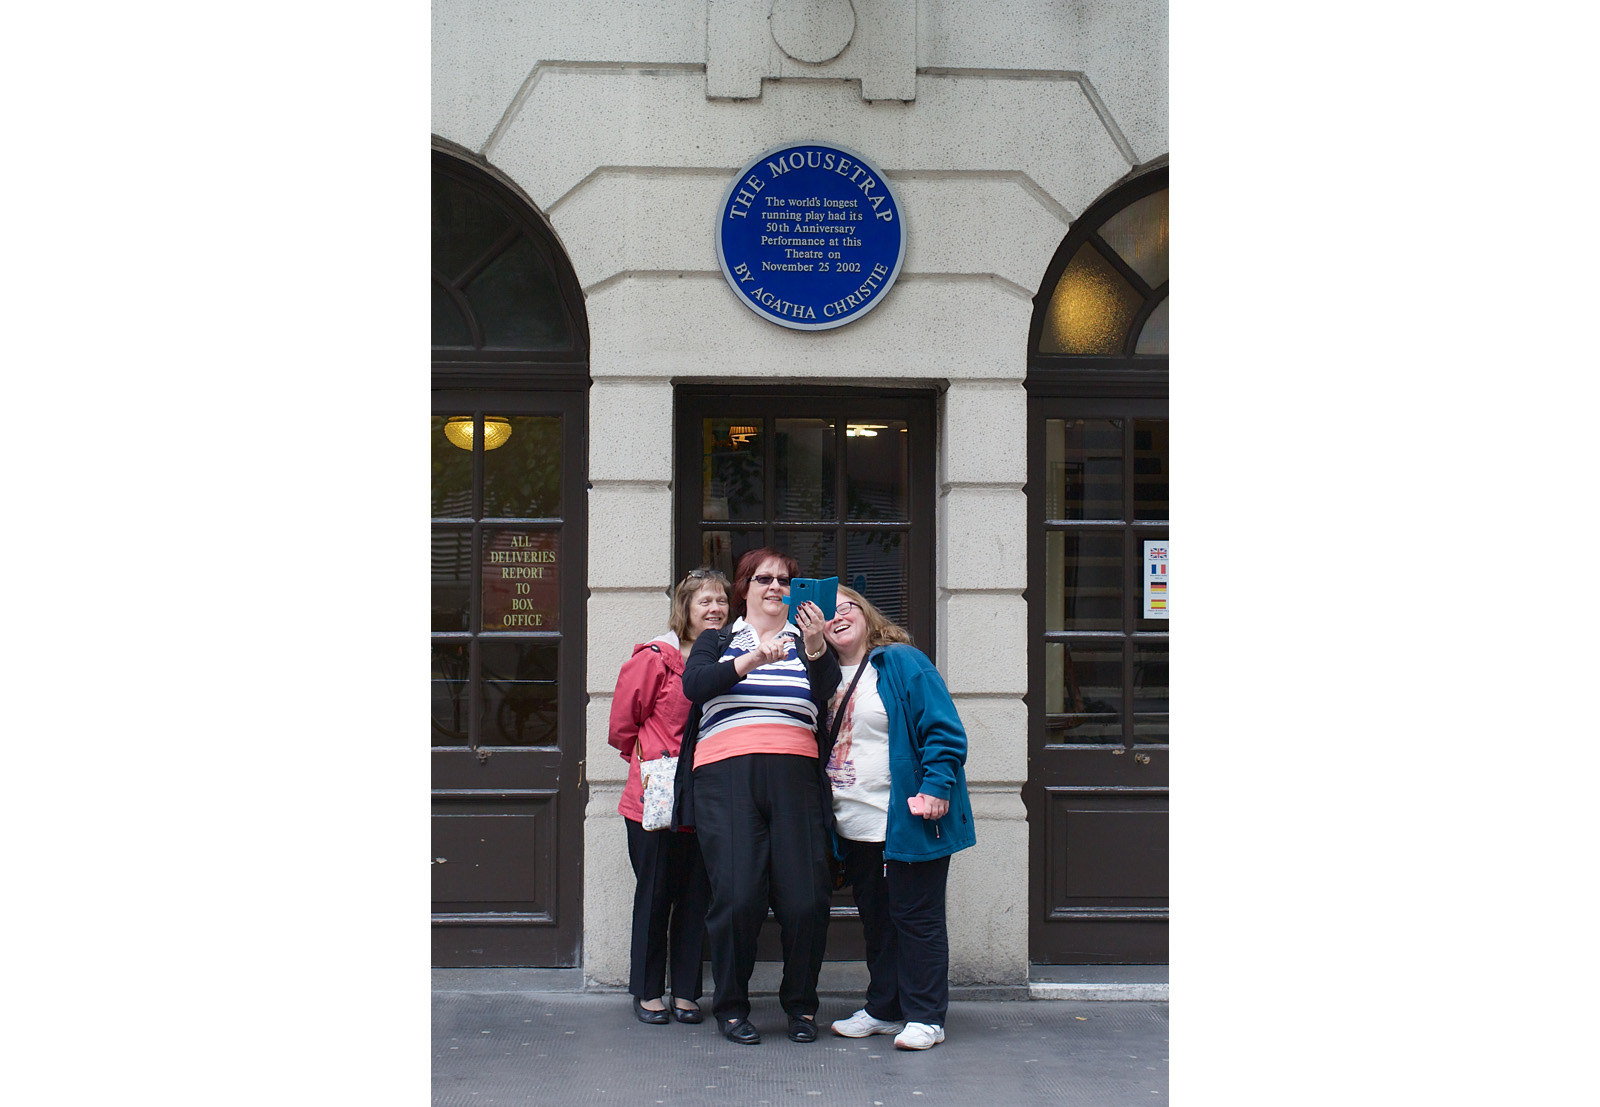 three women, outside theatre with The Mousetrap plaque